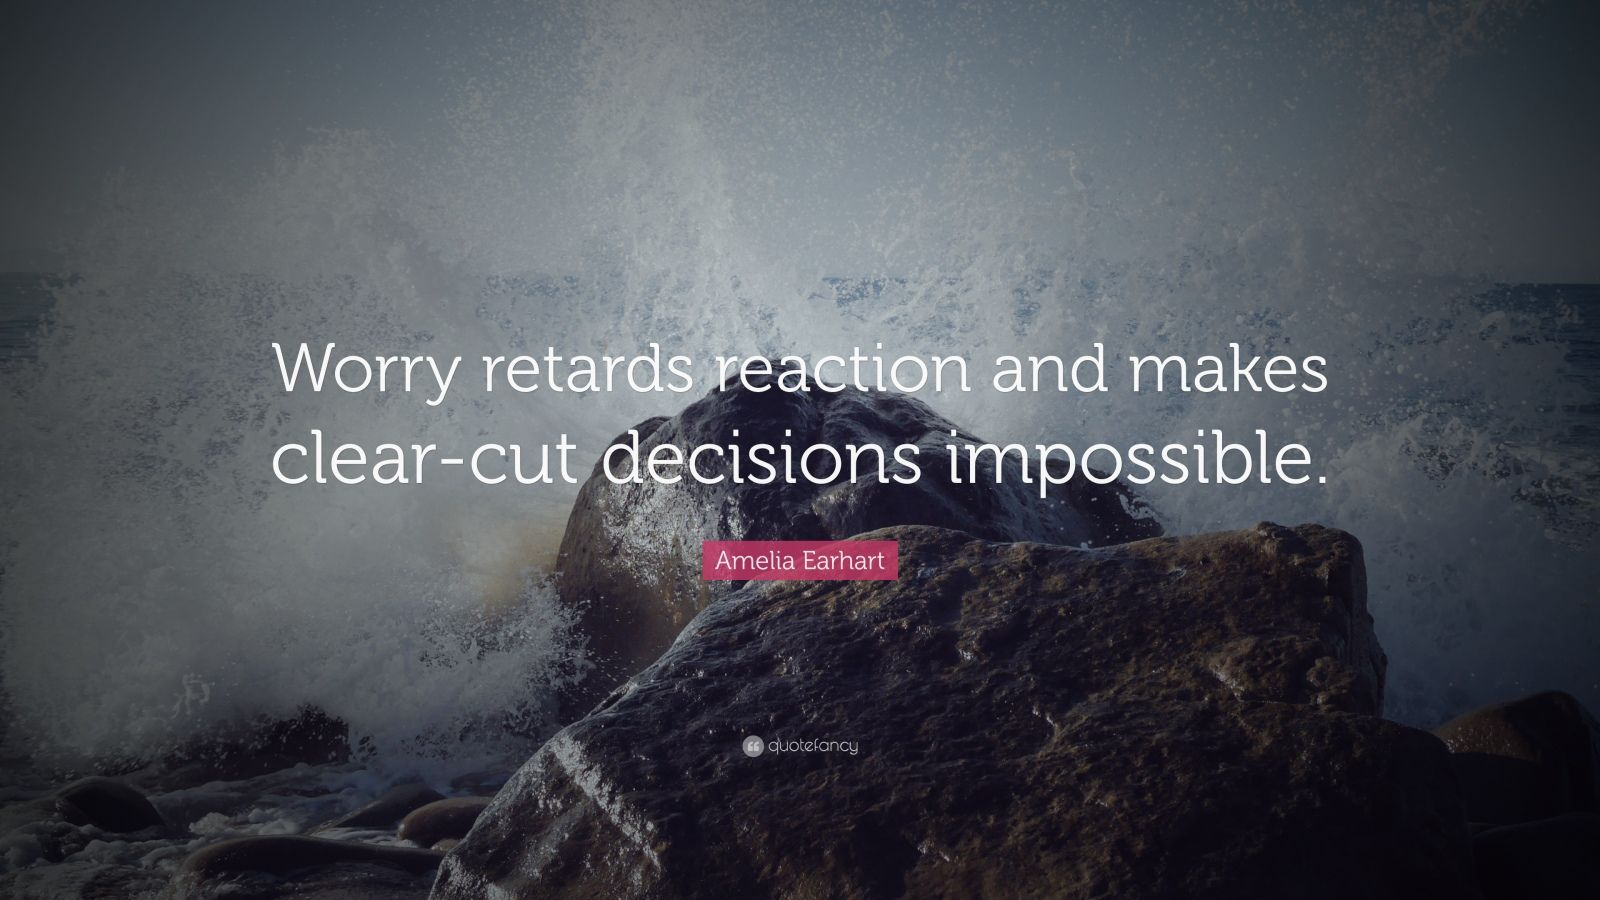 """Amelia Earhart Quote: """"Worry retards reaction and makes clear-cut decisions impossible."""""""